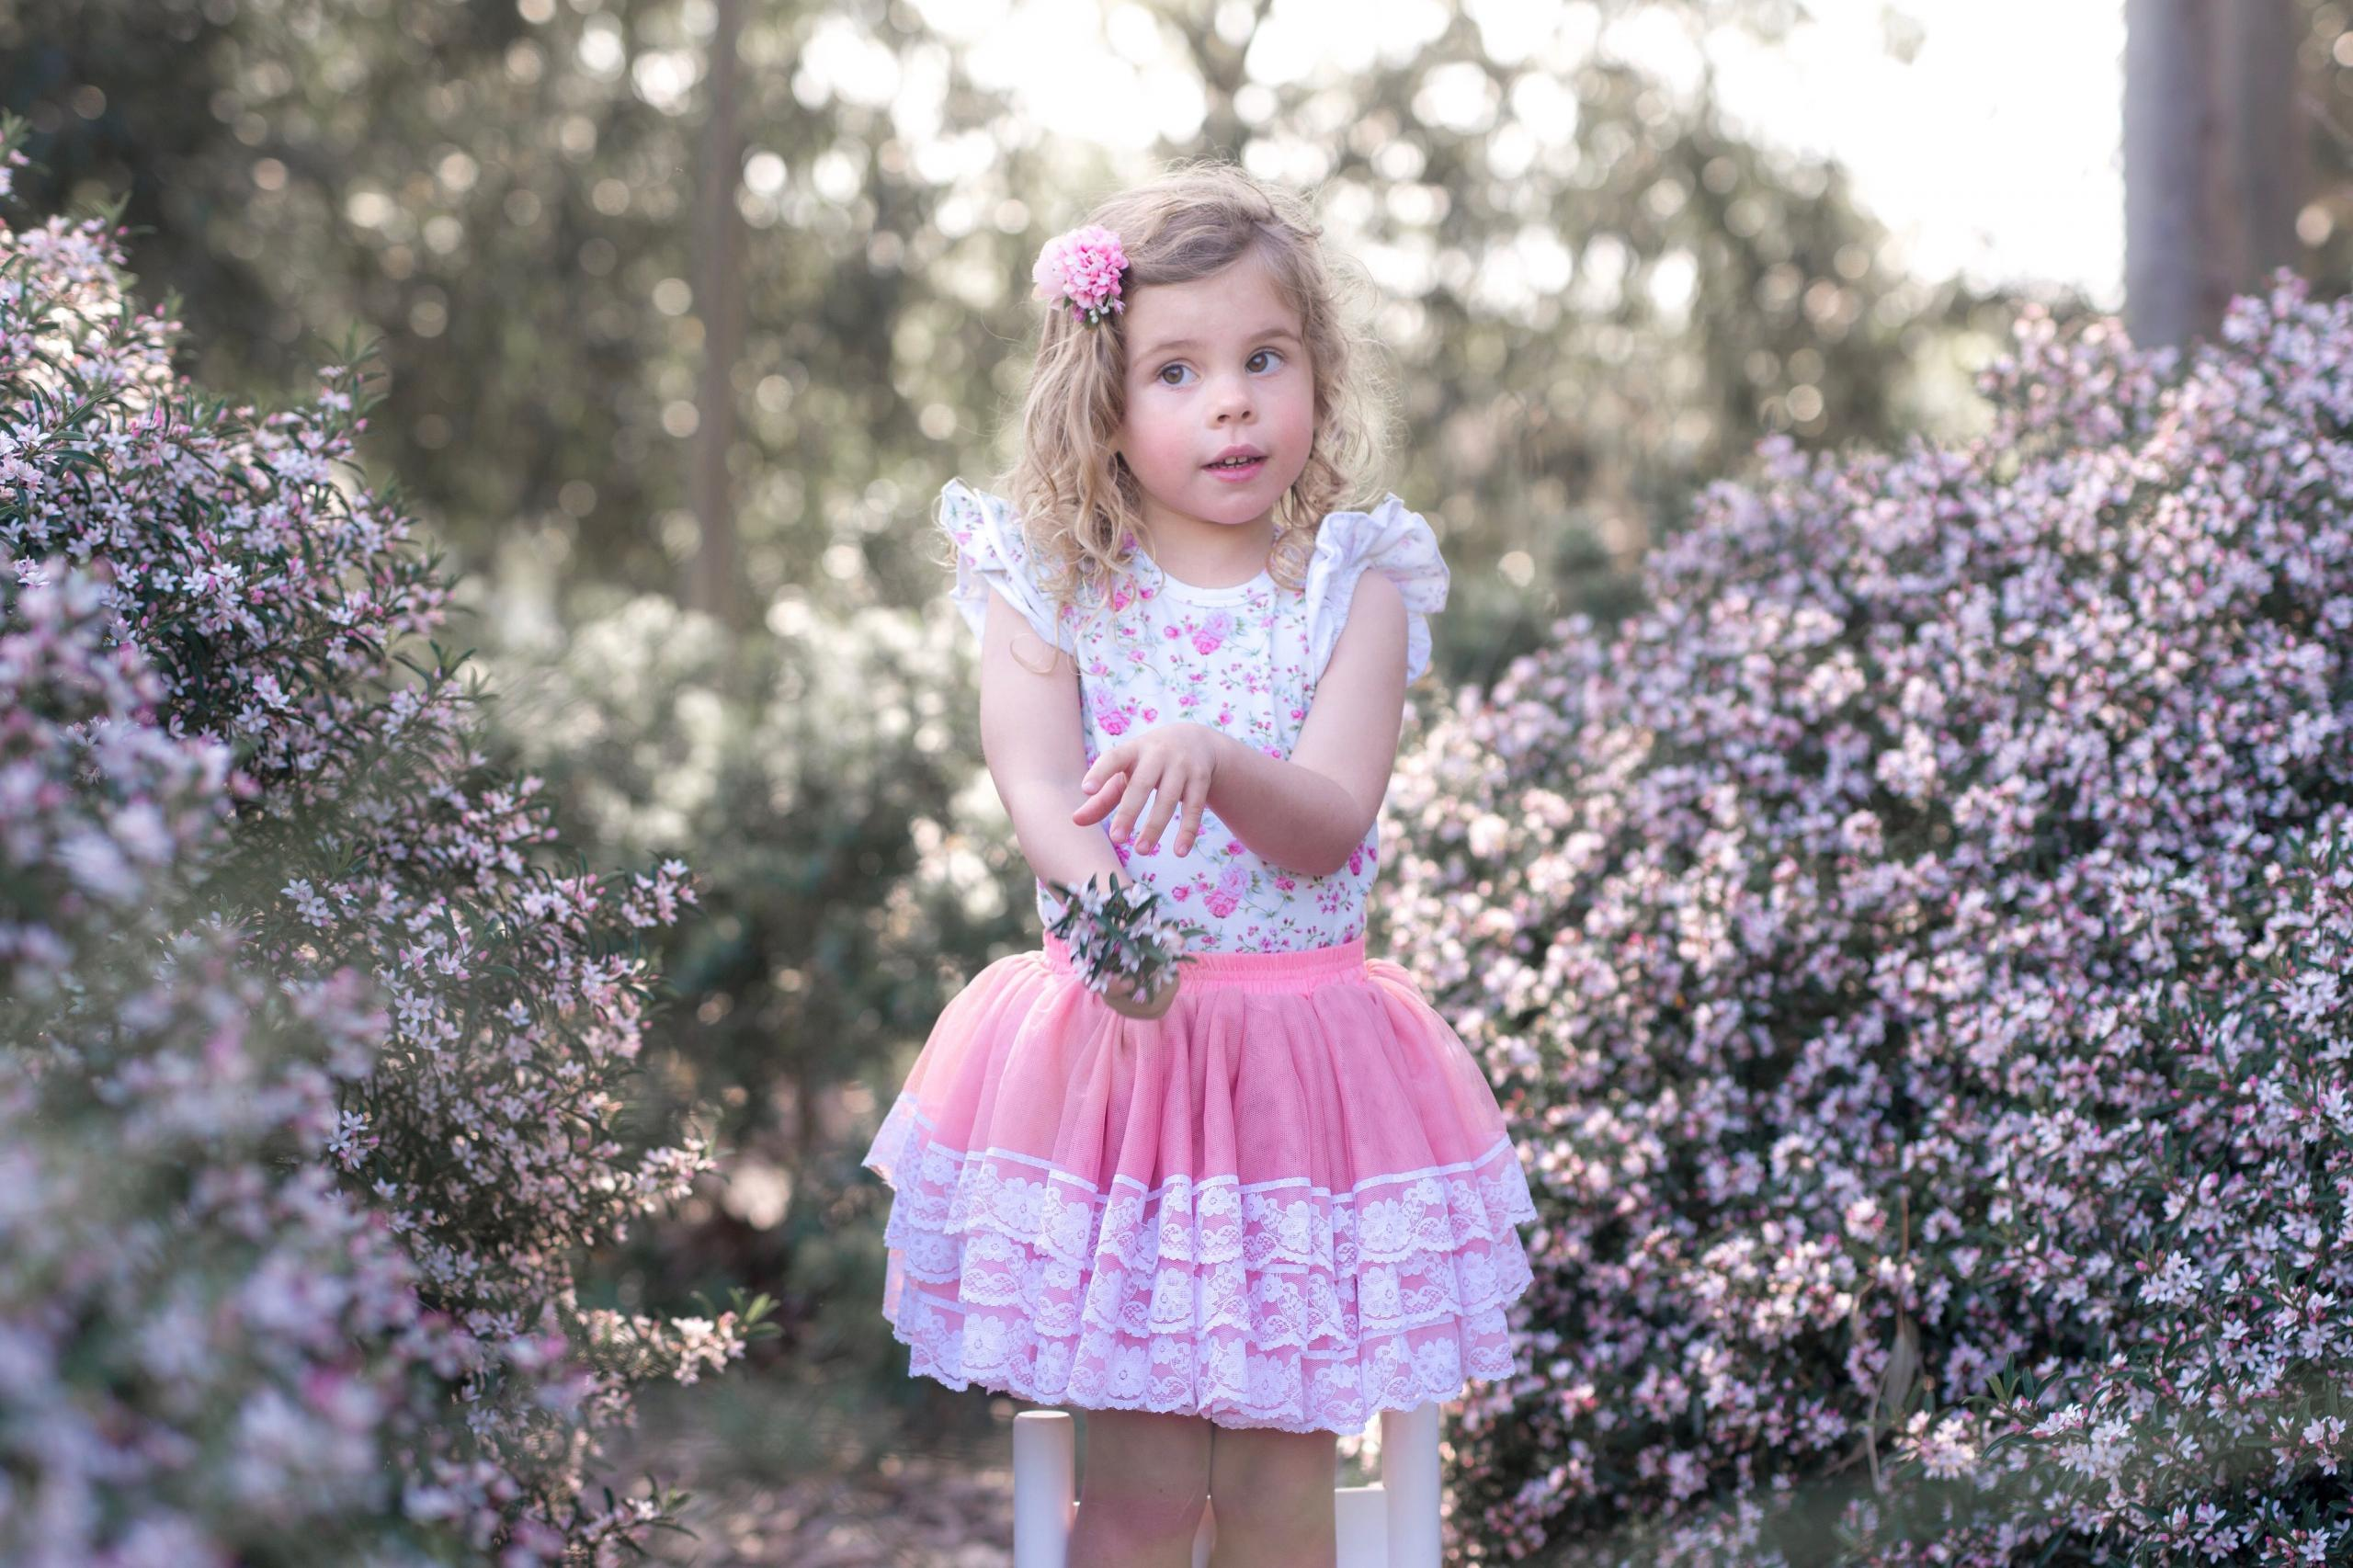 Cute girl wearing tutu skirt